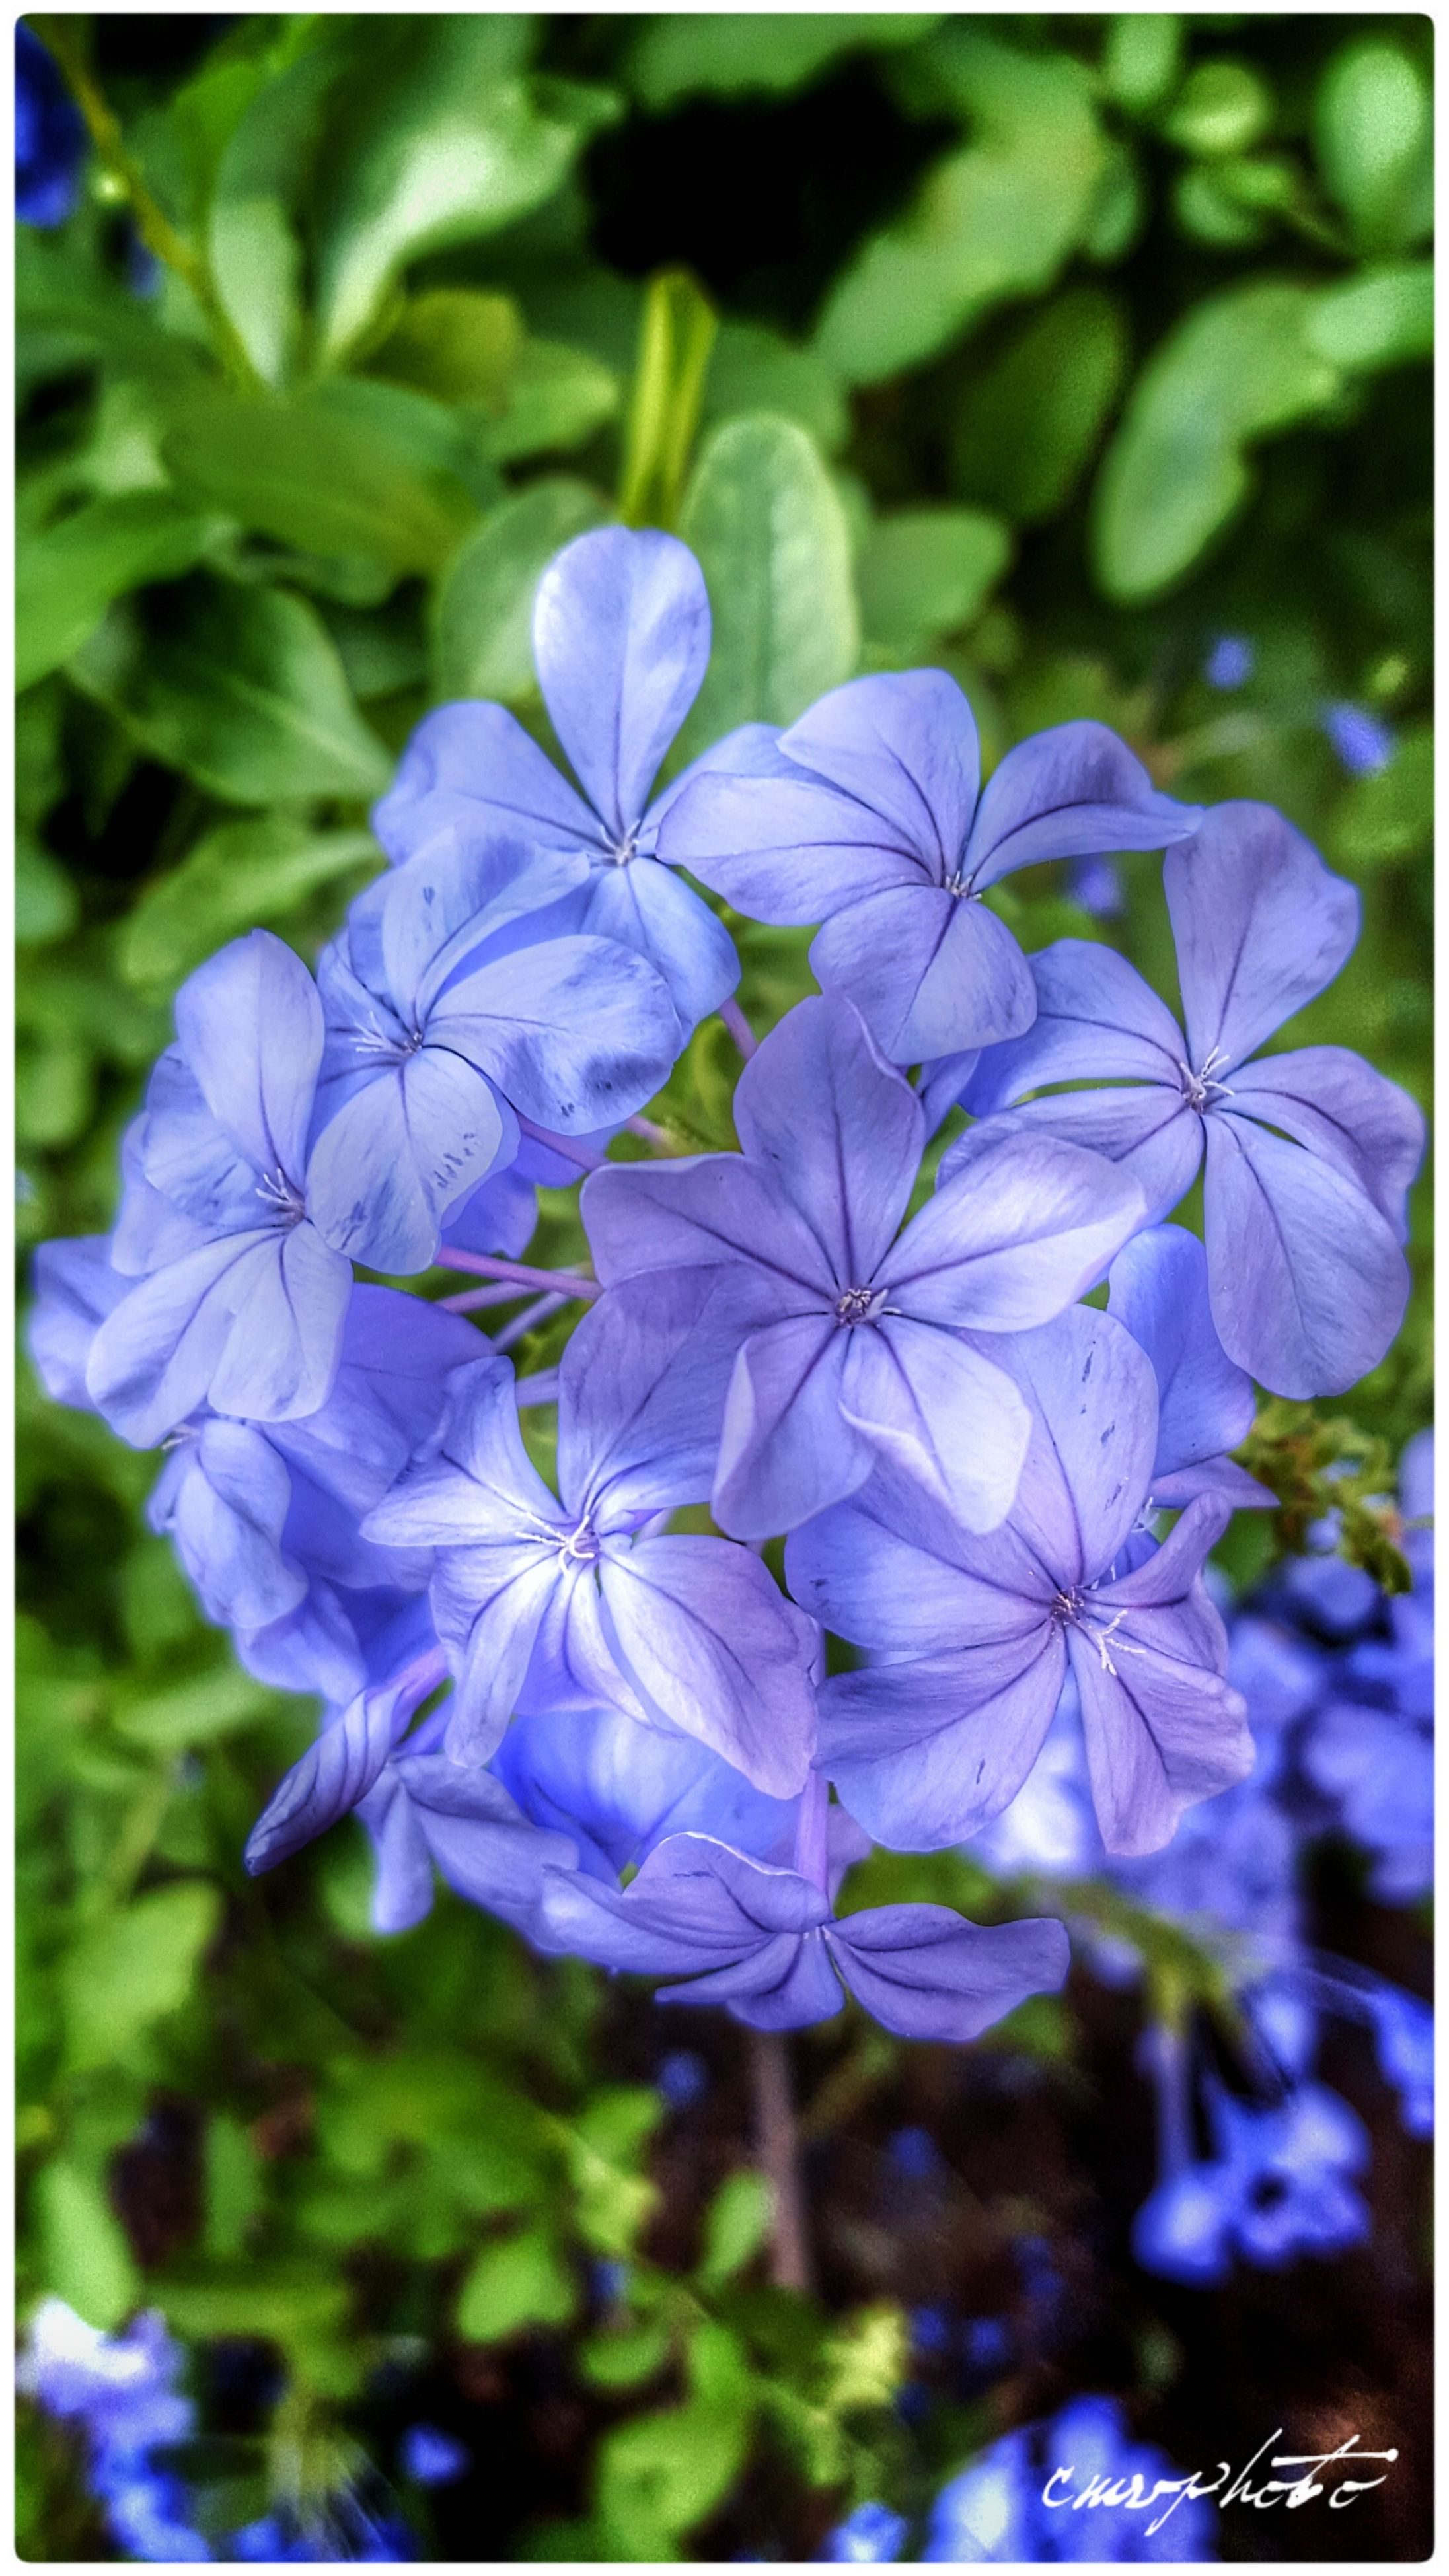 flower, beauty in nature, nature, fragility, purple, growth, petal, freshness, plant, no people, focus on foreground, day, outdoors, close-up, flower head, blooming